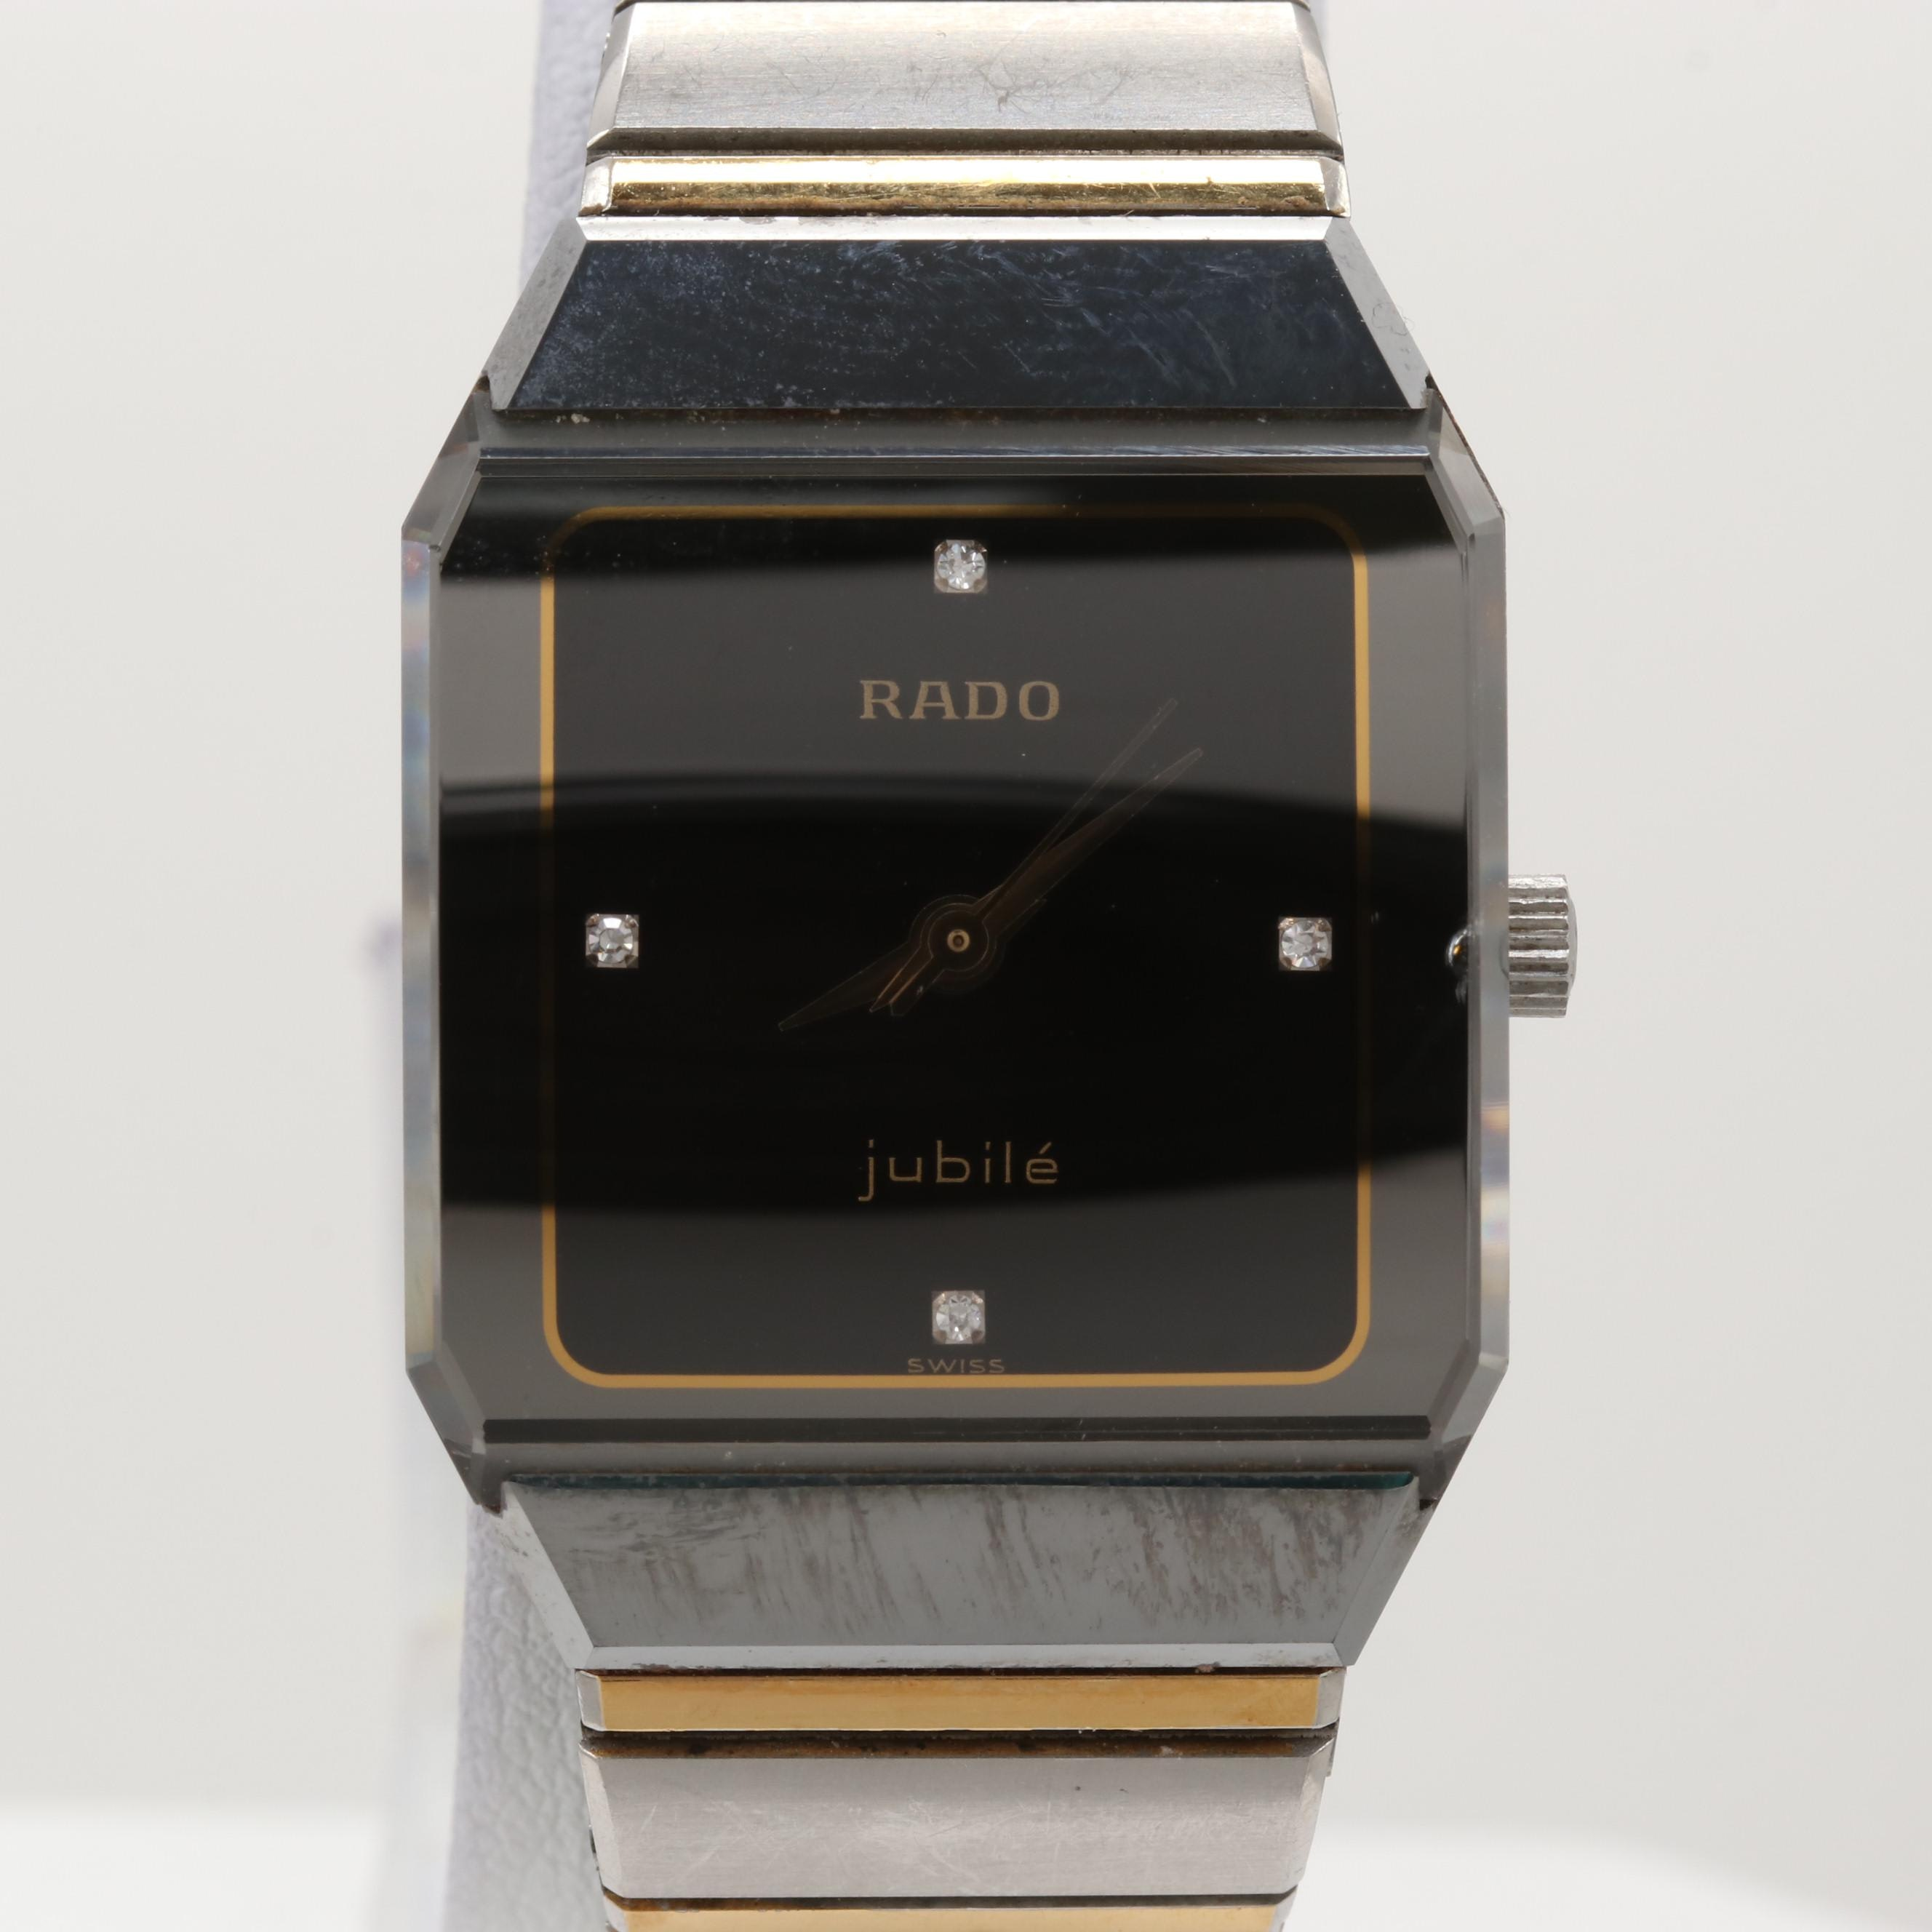 Rado Jubilé Two-Tone Quartz Wristwatch With Diamond Dial